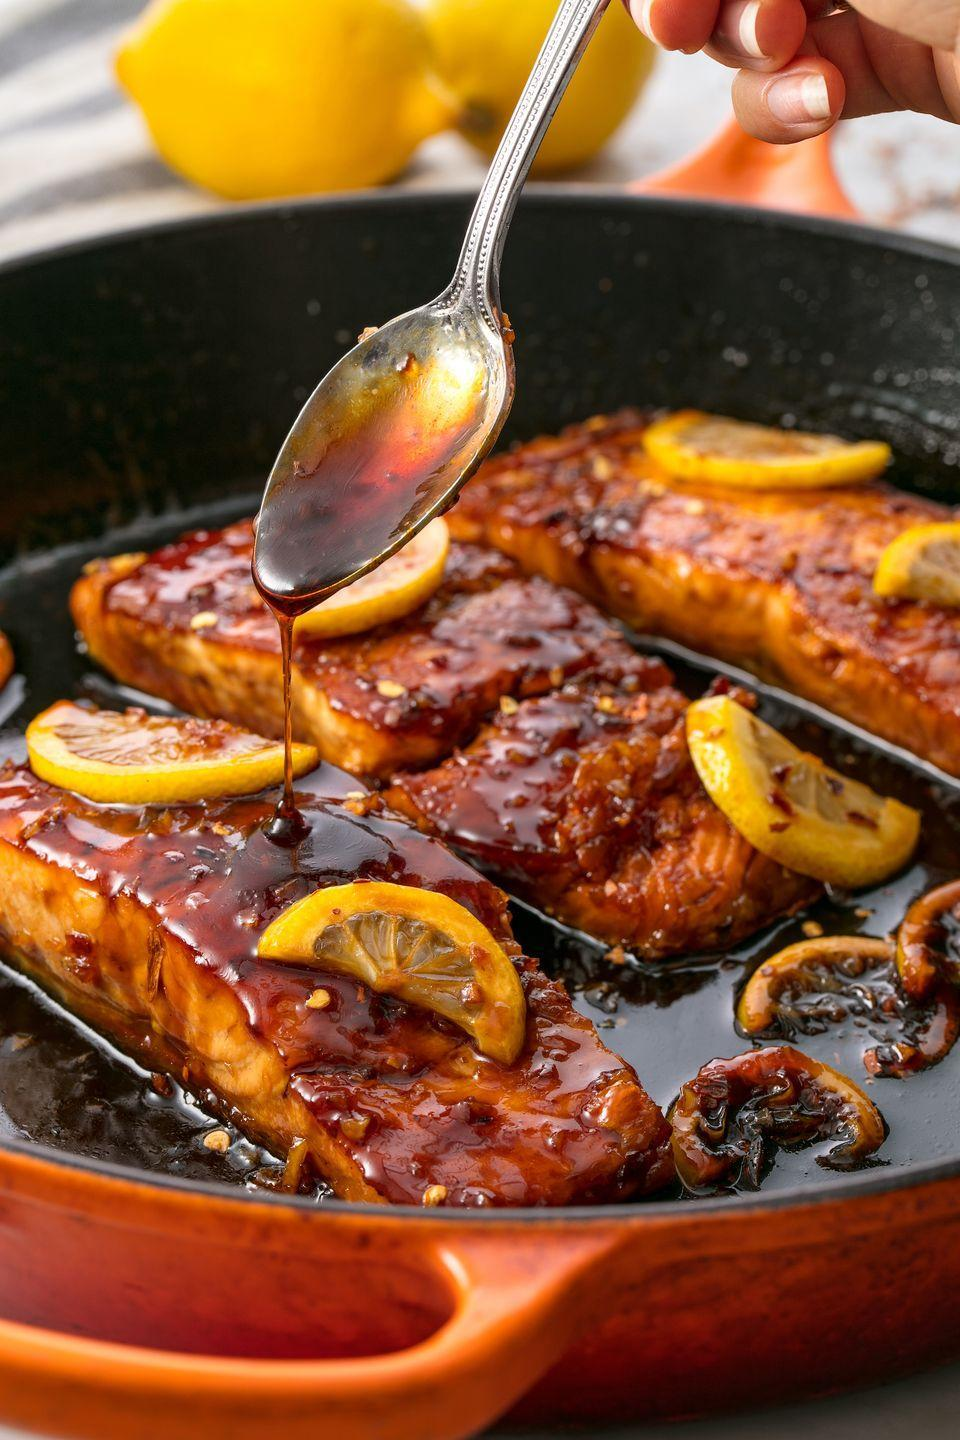 """<p>All you need are a few fillets for a holiday to remember.</p><p>Get the recipe from <a href=""""https://www.delish.com/cooking/recipe-ideas/recipes/a55762/honey-garlic-glazed-salmon-recipe/"""" rel=""""nofollow noopener"""" target=""""_blank"""" data-ylk=""""slk:Delish"""" class=""""link rapid-noclick-resp"""">Delish</a>.</p>"""